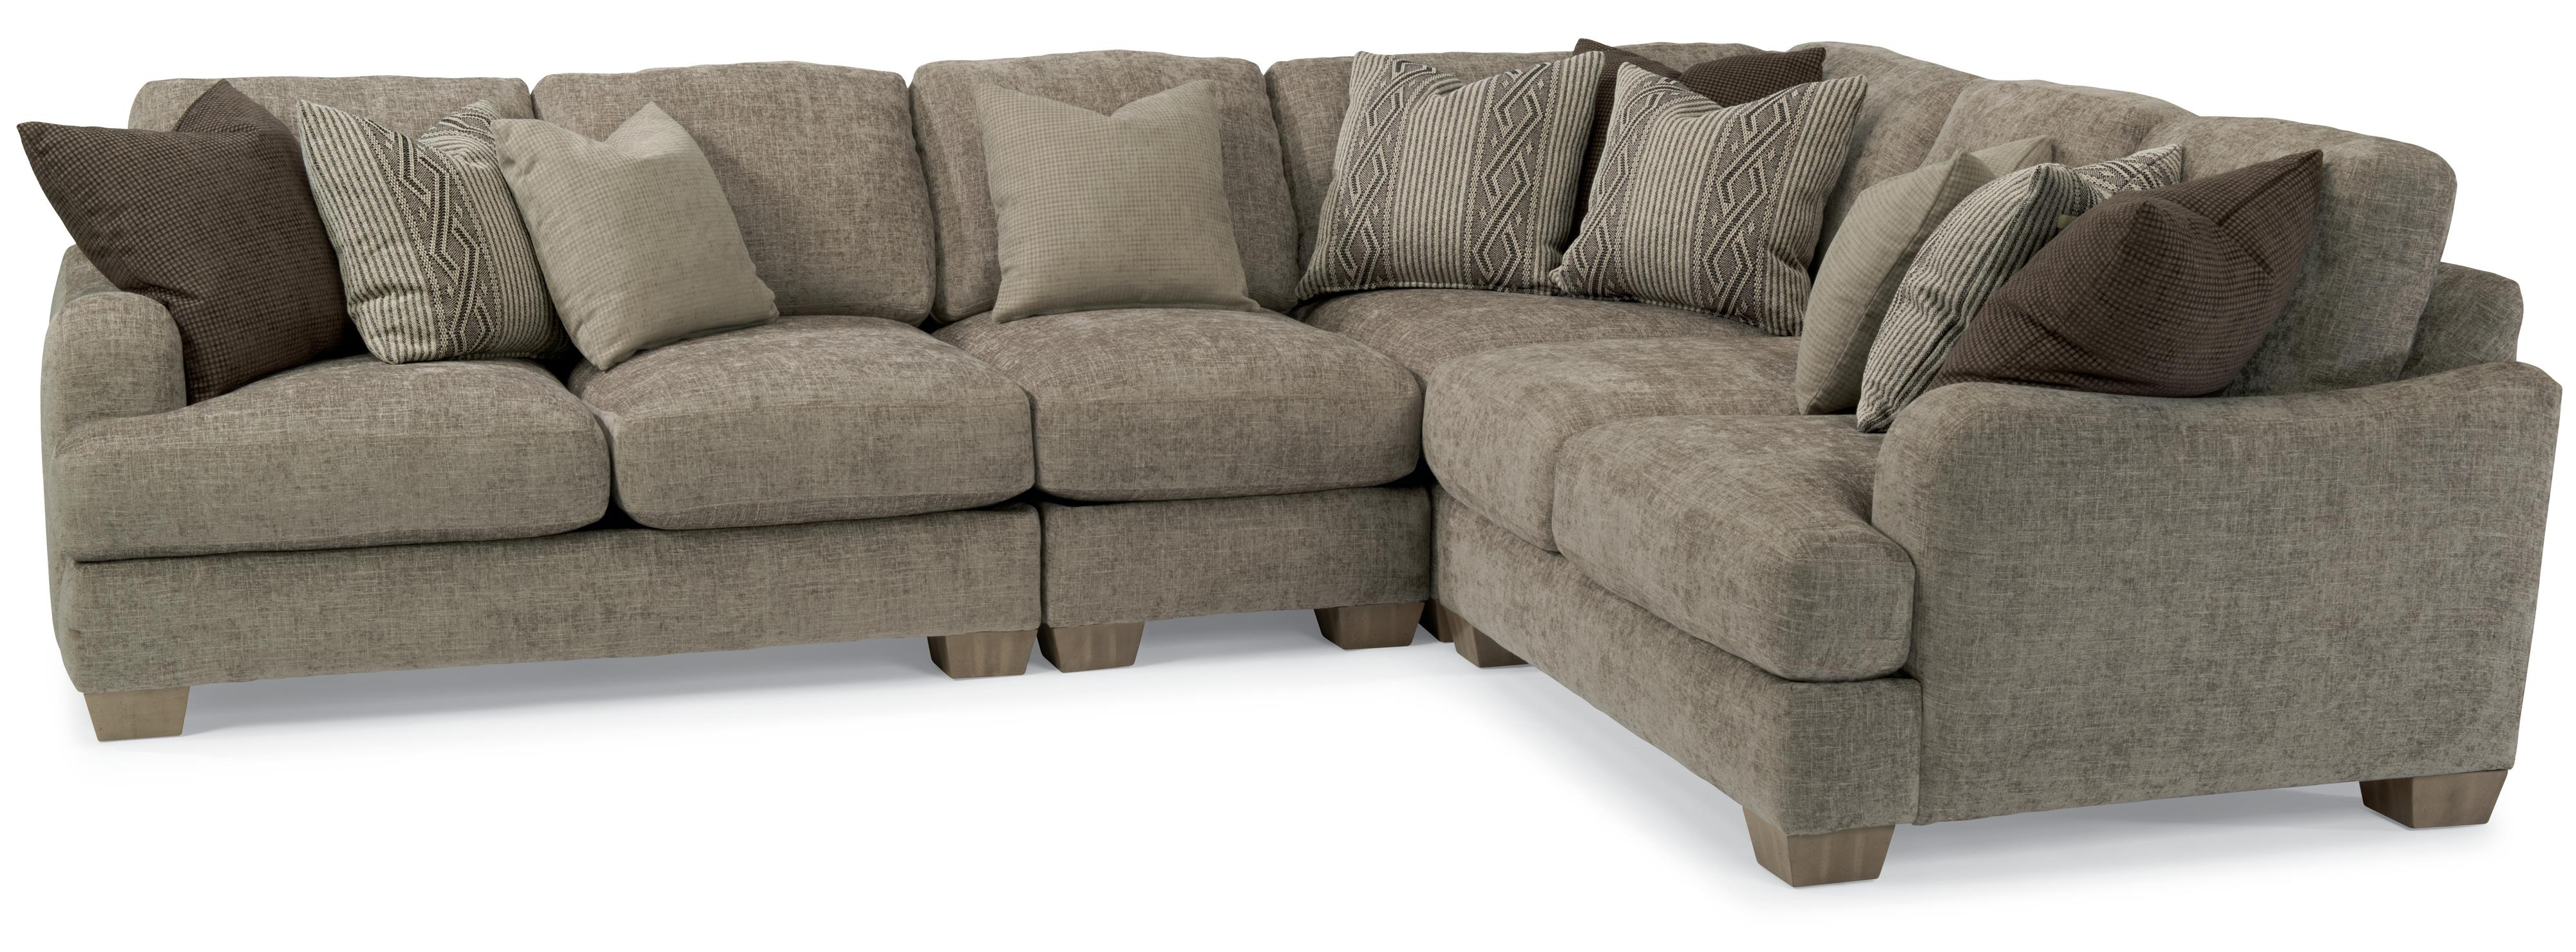 Vanessa Sectional Sofa With Loose Pillow Backflexsteel Throughout Fashionable Kansas City Sectional Sofas (View 18 of 20)